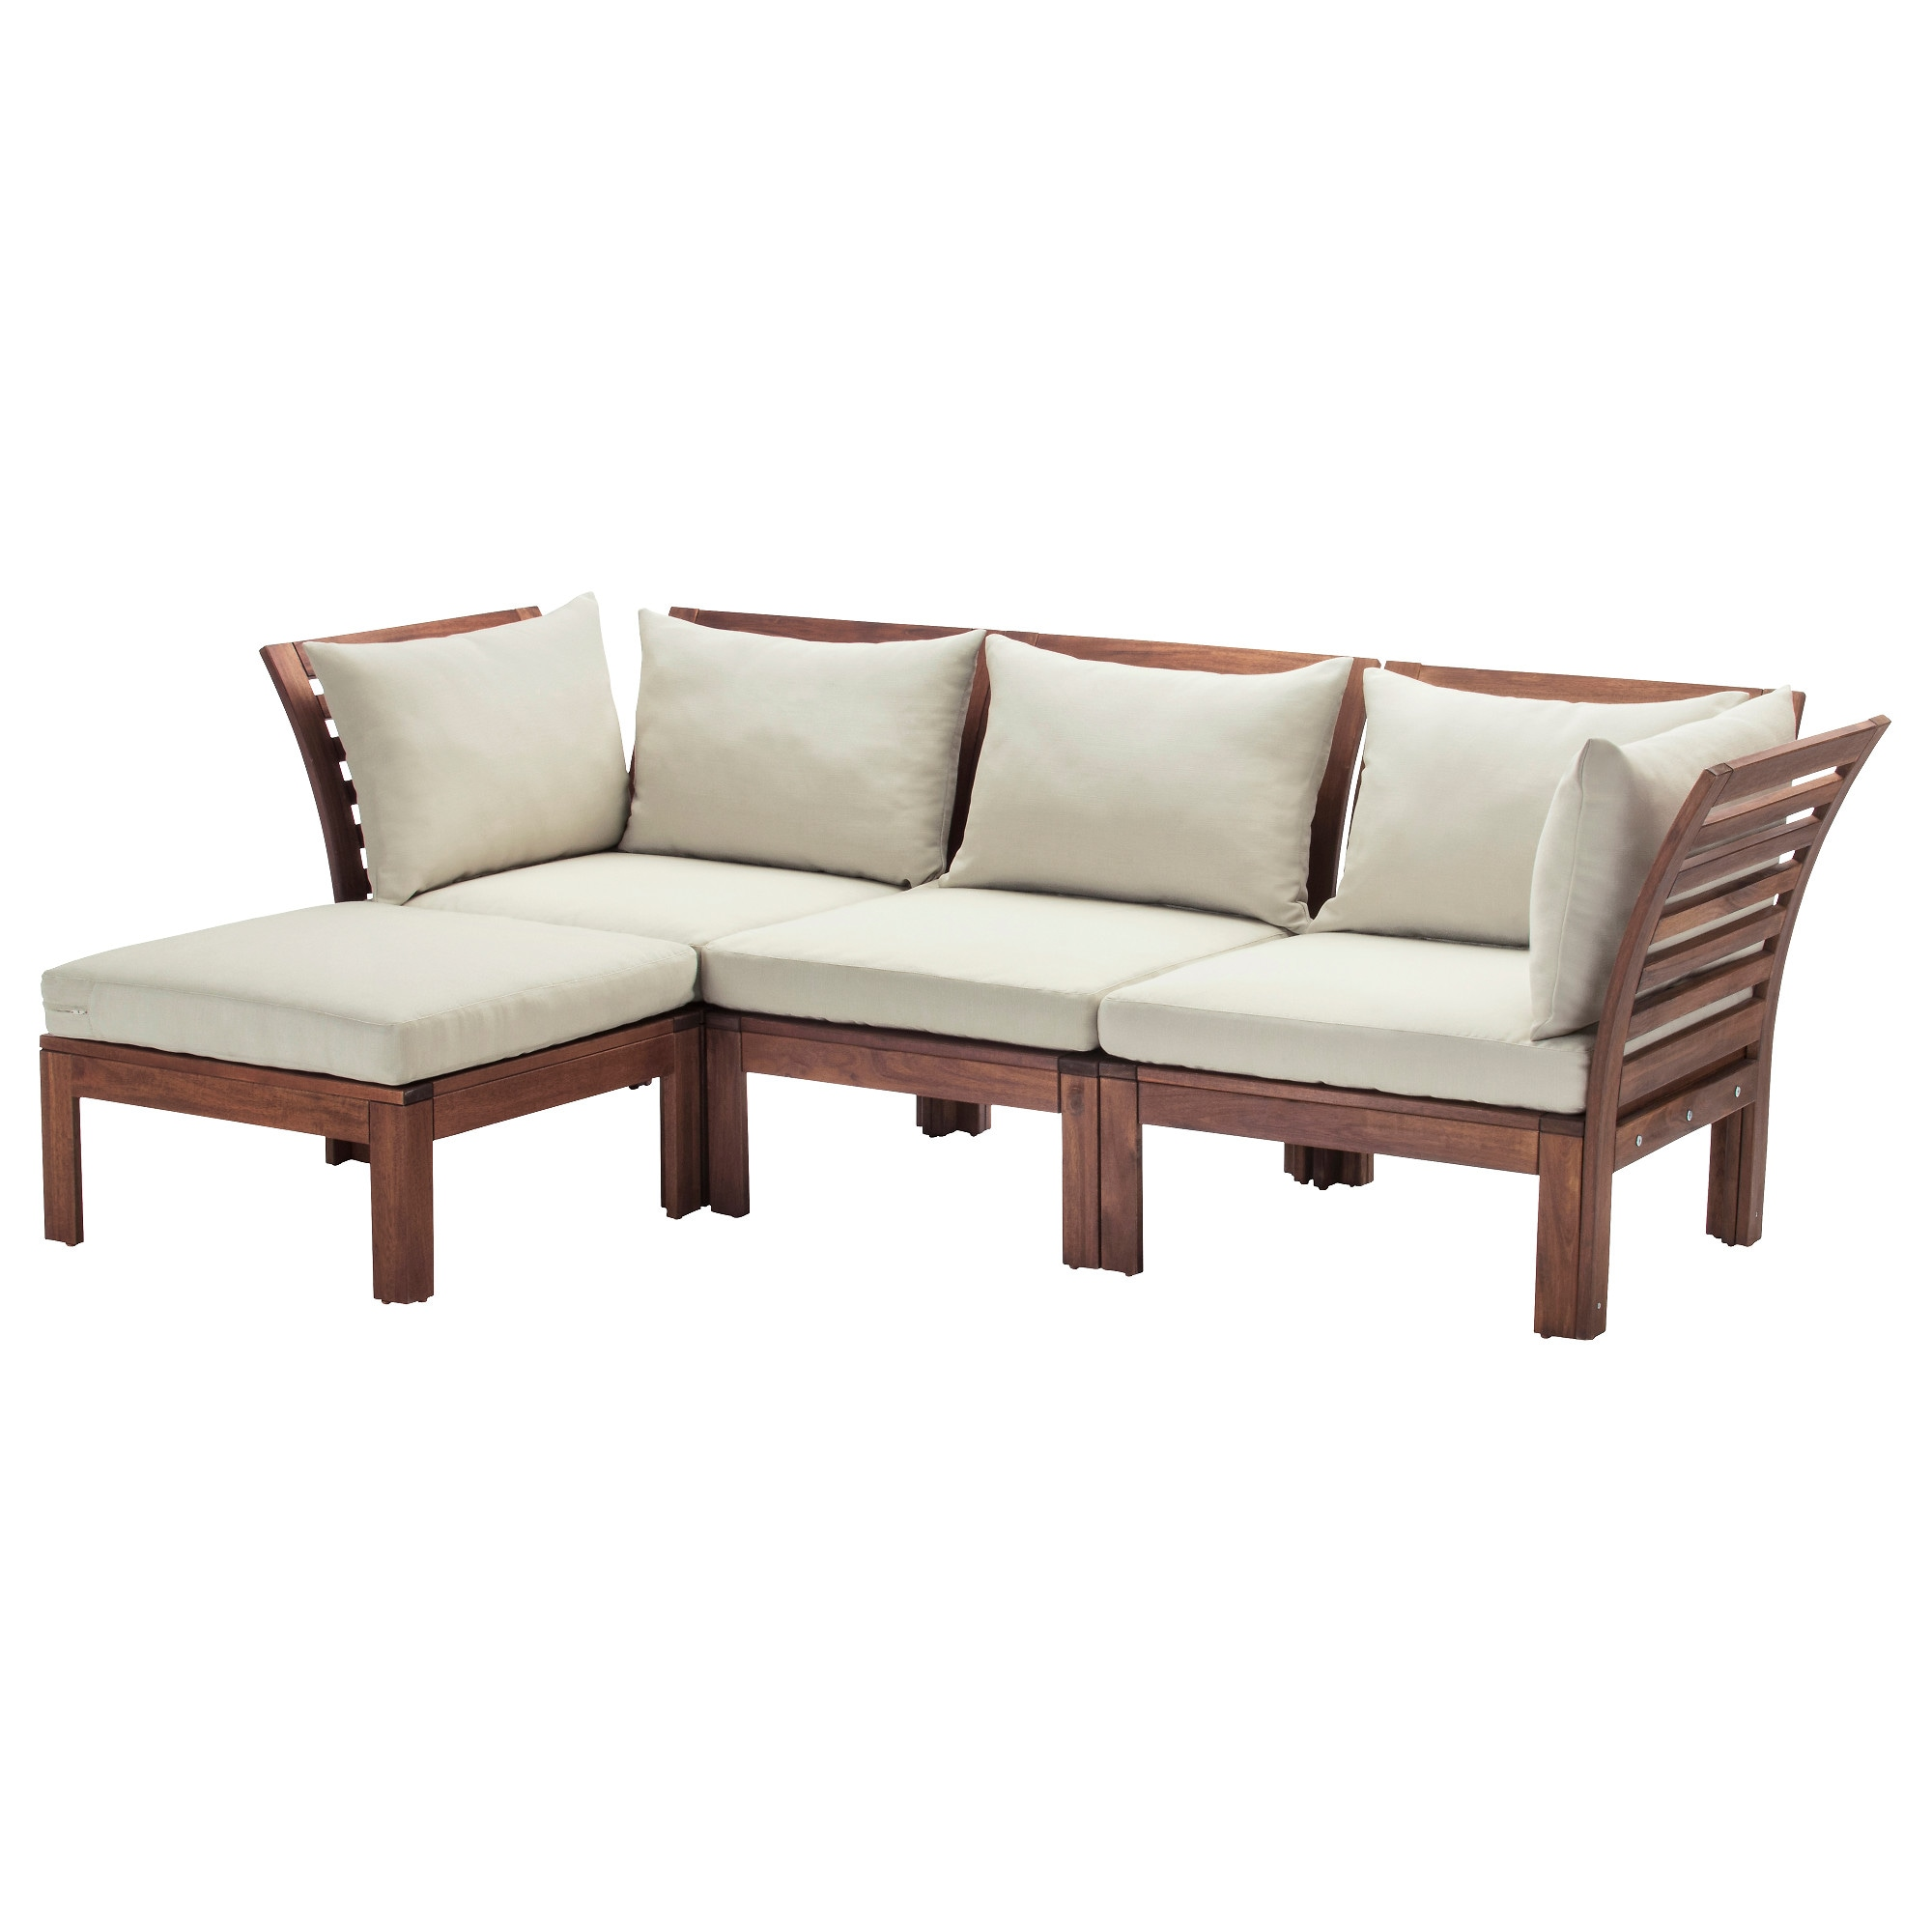 Inflatable furniture ikea -  Pplar H Ll Sofa With Footstool Outdoor Brown Stained Beige Depth 31